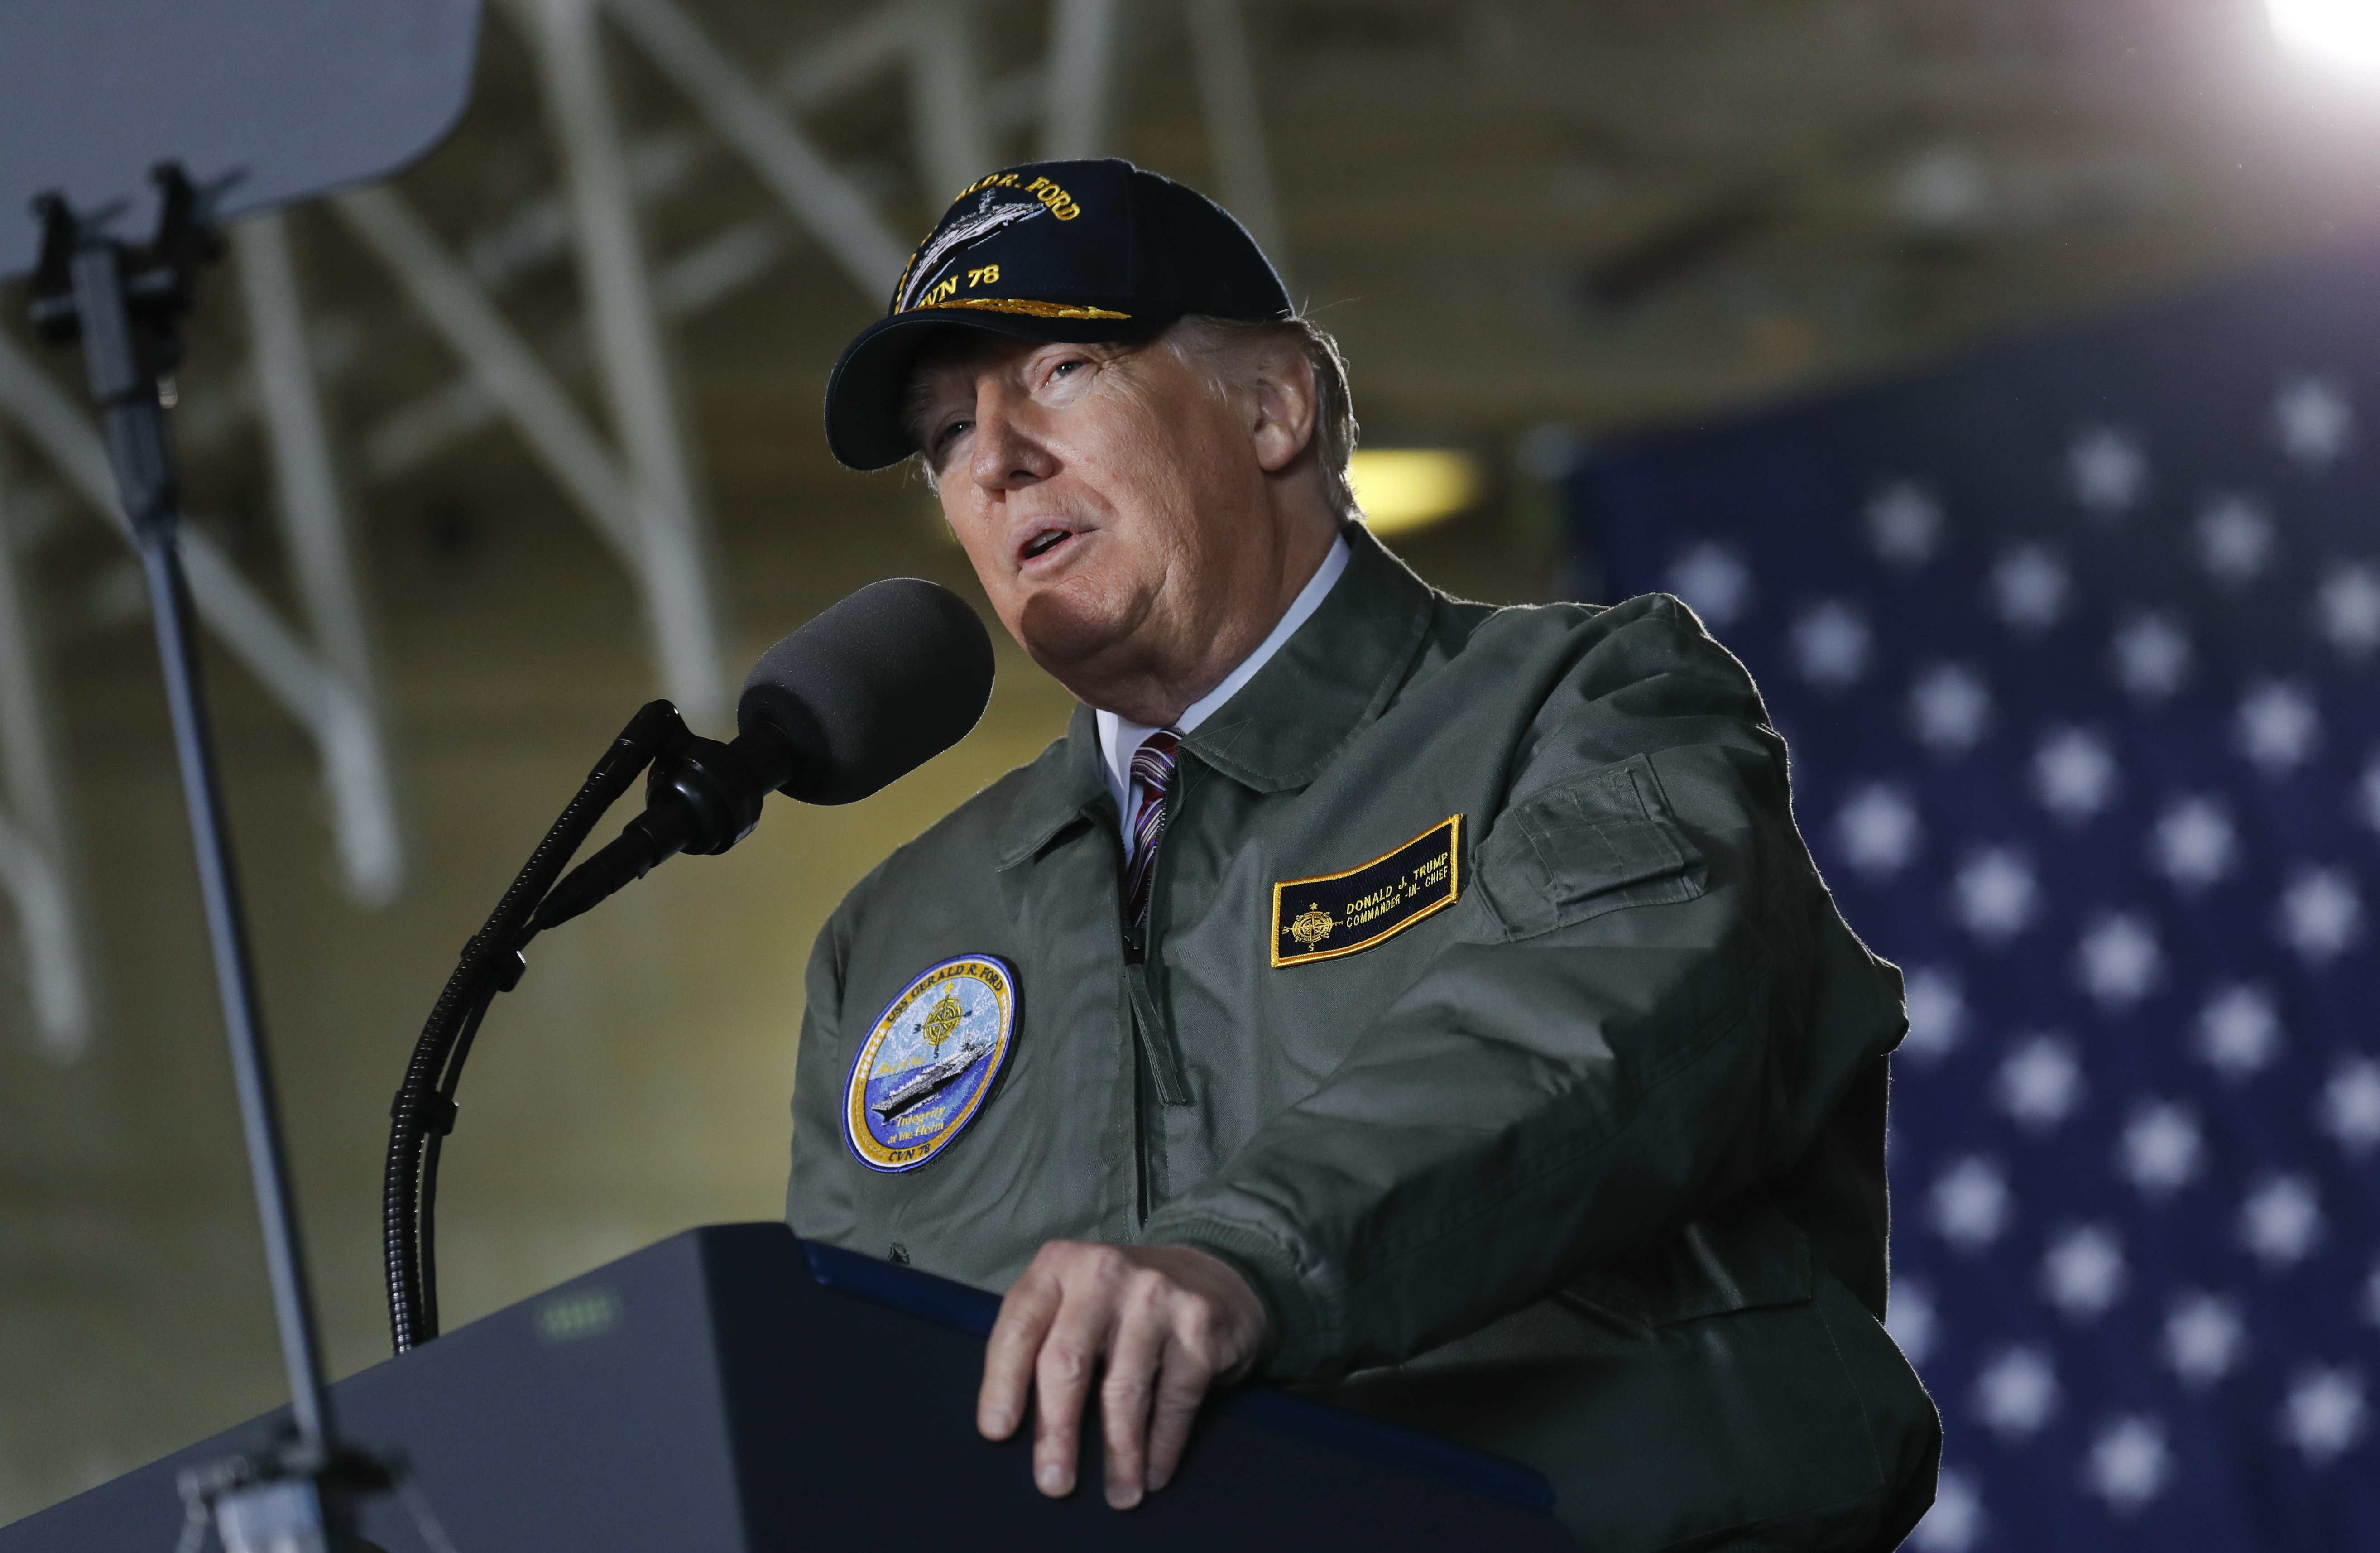 President Donald Trump reads from a teleprompter during a speech aboard the nuclear aircraft carrier Gerald R. Ford, at Newport News Shipbuilding in Newport News, Va., Thursday, March 2, 2017.